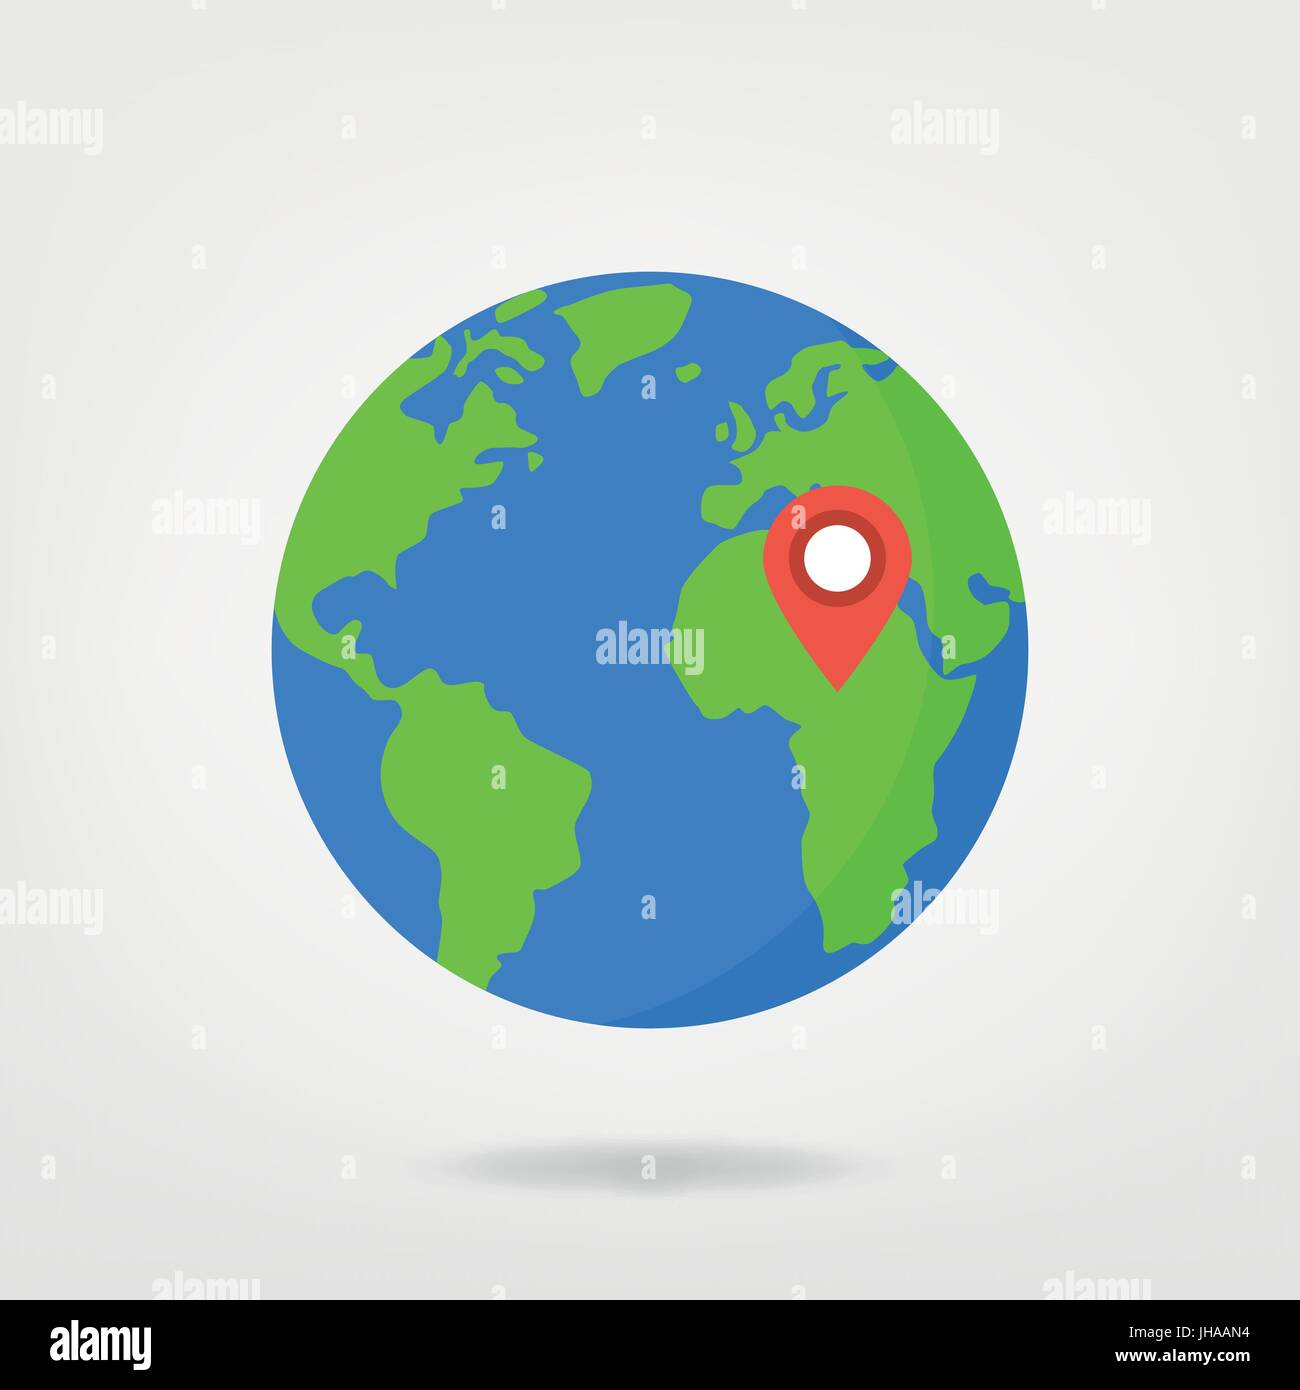 Africa location pin on world illustration world map globe with africa location pin on world illustration world map globe with red location marker gumiabroncs Image collections